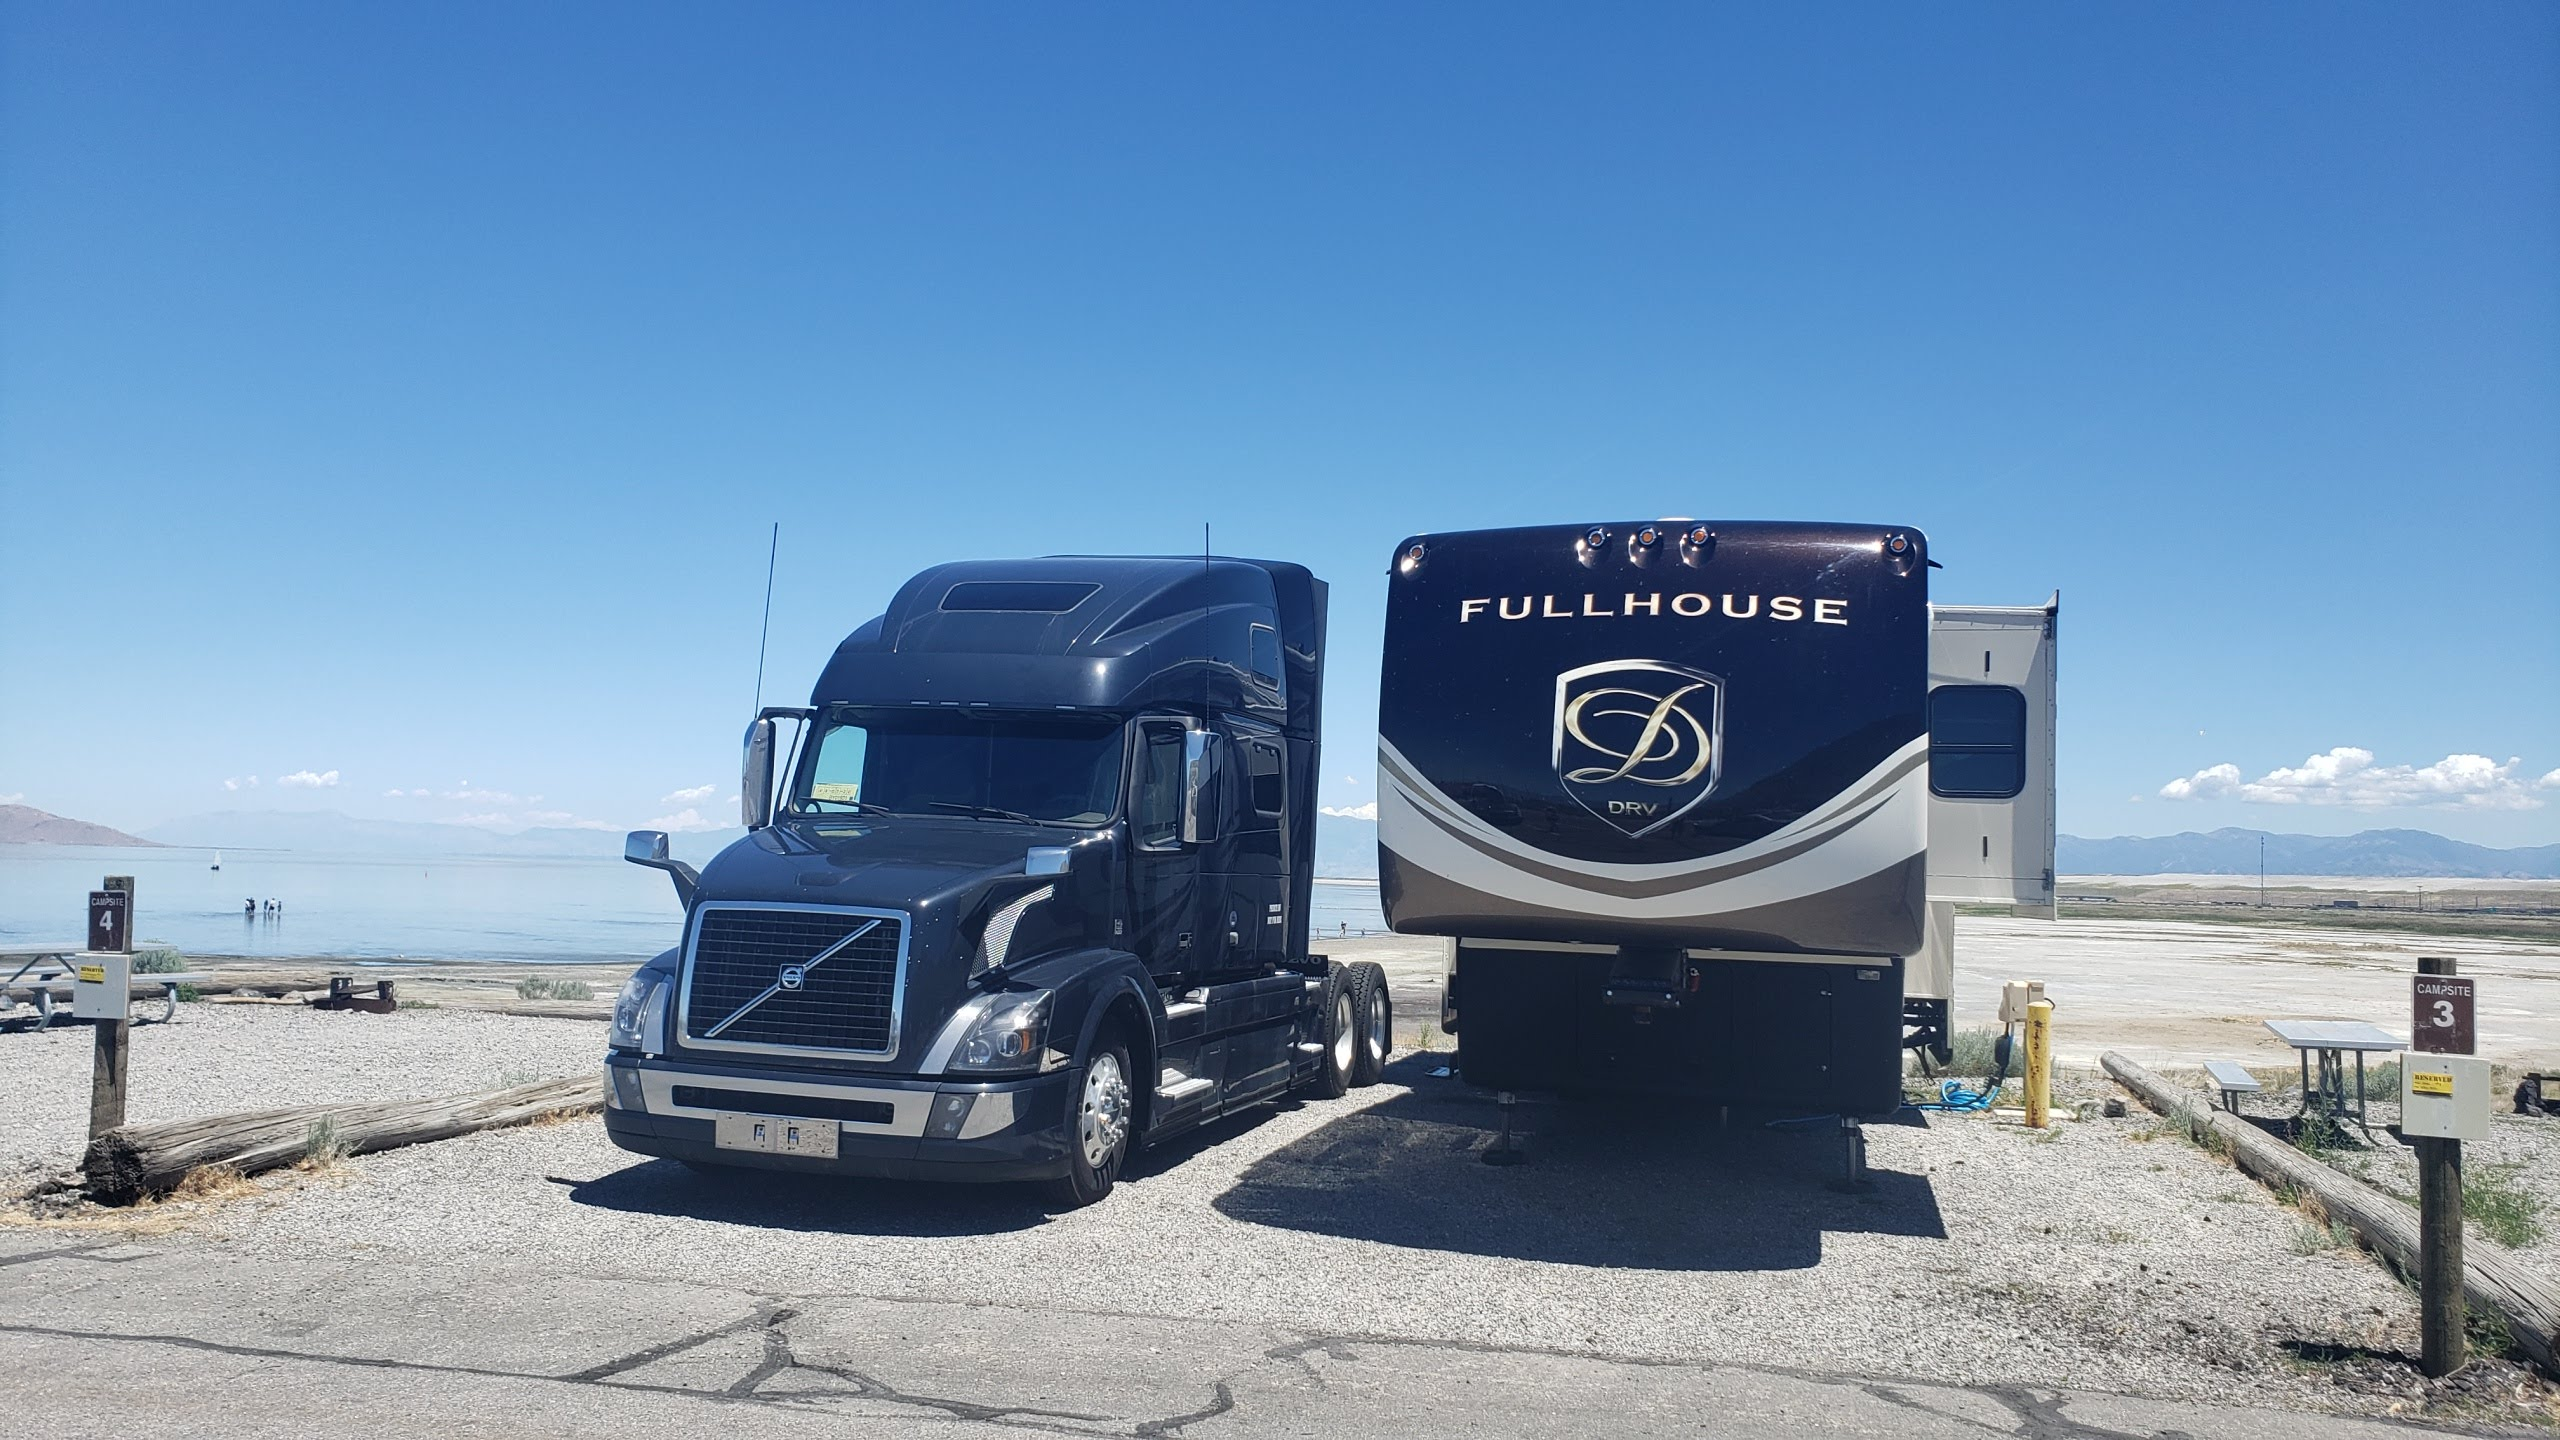 Our Volvo and DRV Fullhouse